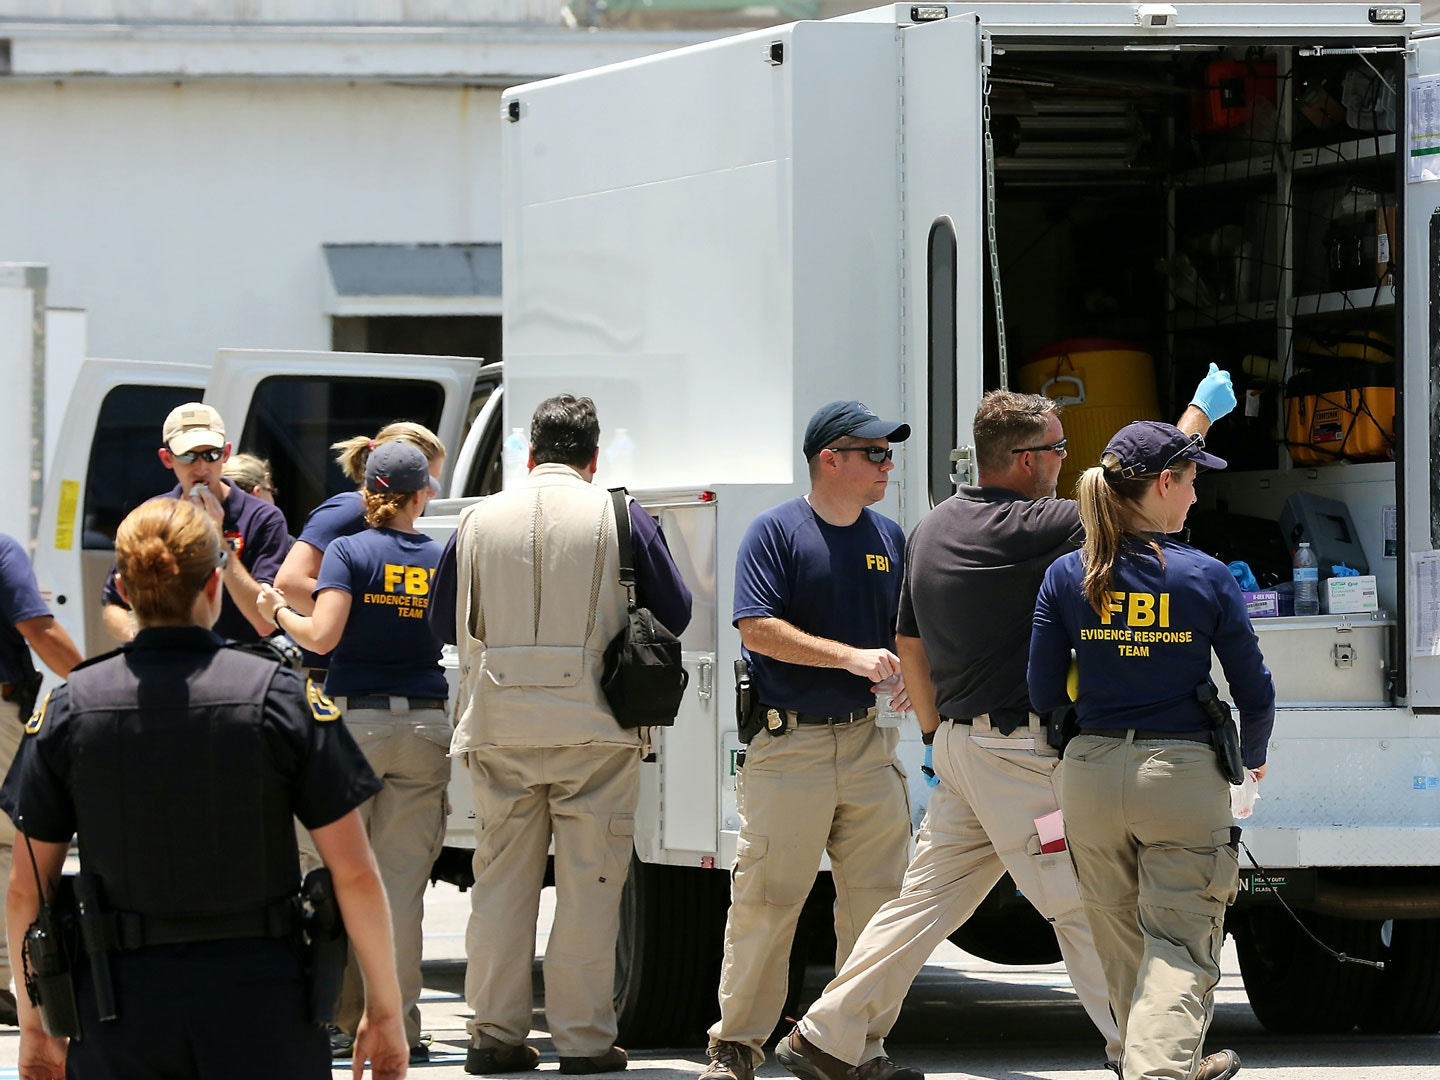 In this photo taken on Monday, July 27, 2015, federal agents and Key West Police gather in a restaurant parking lot in Key West, Fla. A man described by the FBI as an Islamic State sympathizer who hoped to mount attacks on U.S. soil was charged Tuesday with plotting to detonate a nail-filled backpack bomb on a Florida beach. (Rob O'Neal/The Key West Citizen via AP)  MIAMI OUT; MANDATORY CREDIT